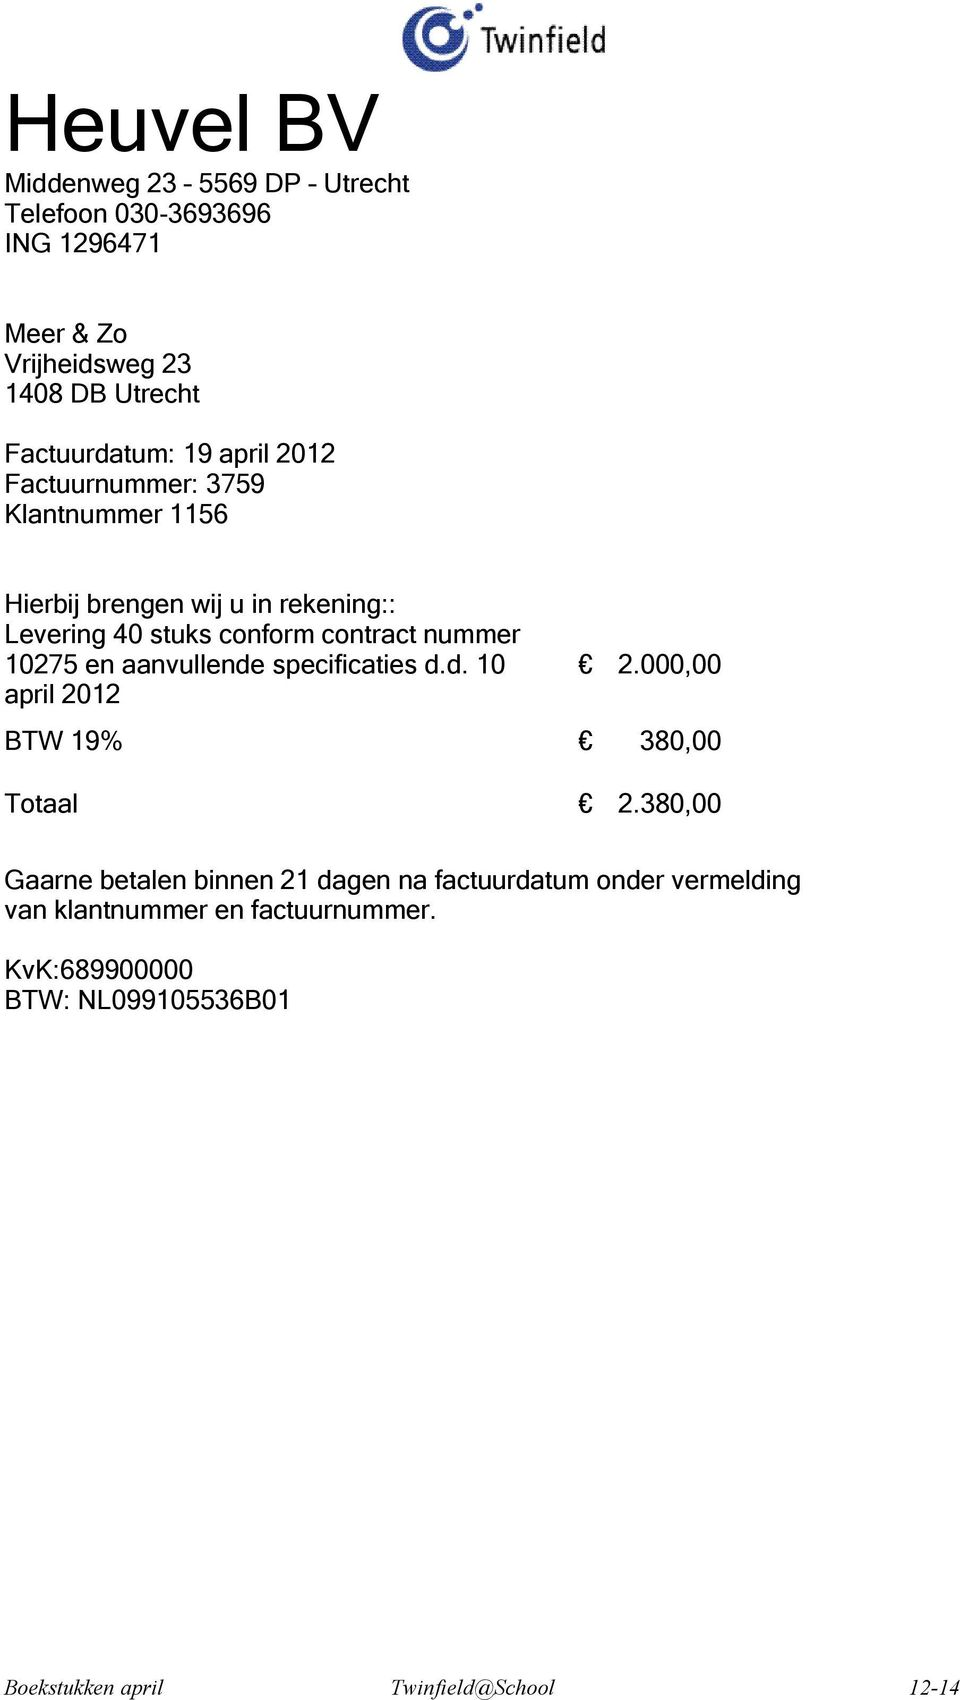 10275 en aanvullende specificaties d.d. 10 april 2012 2.000,00 BTW 19% 380,00 Totaal 2.